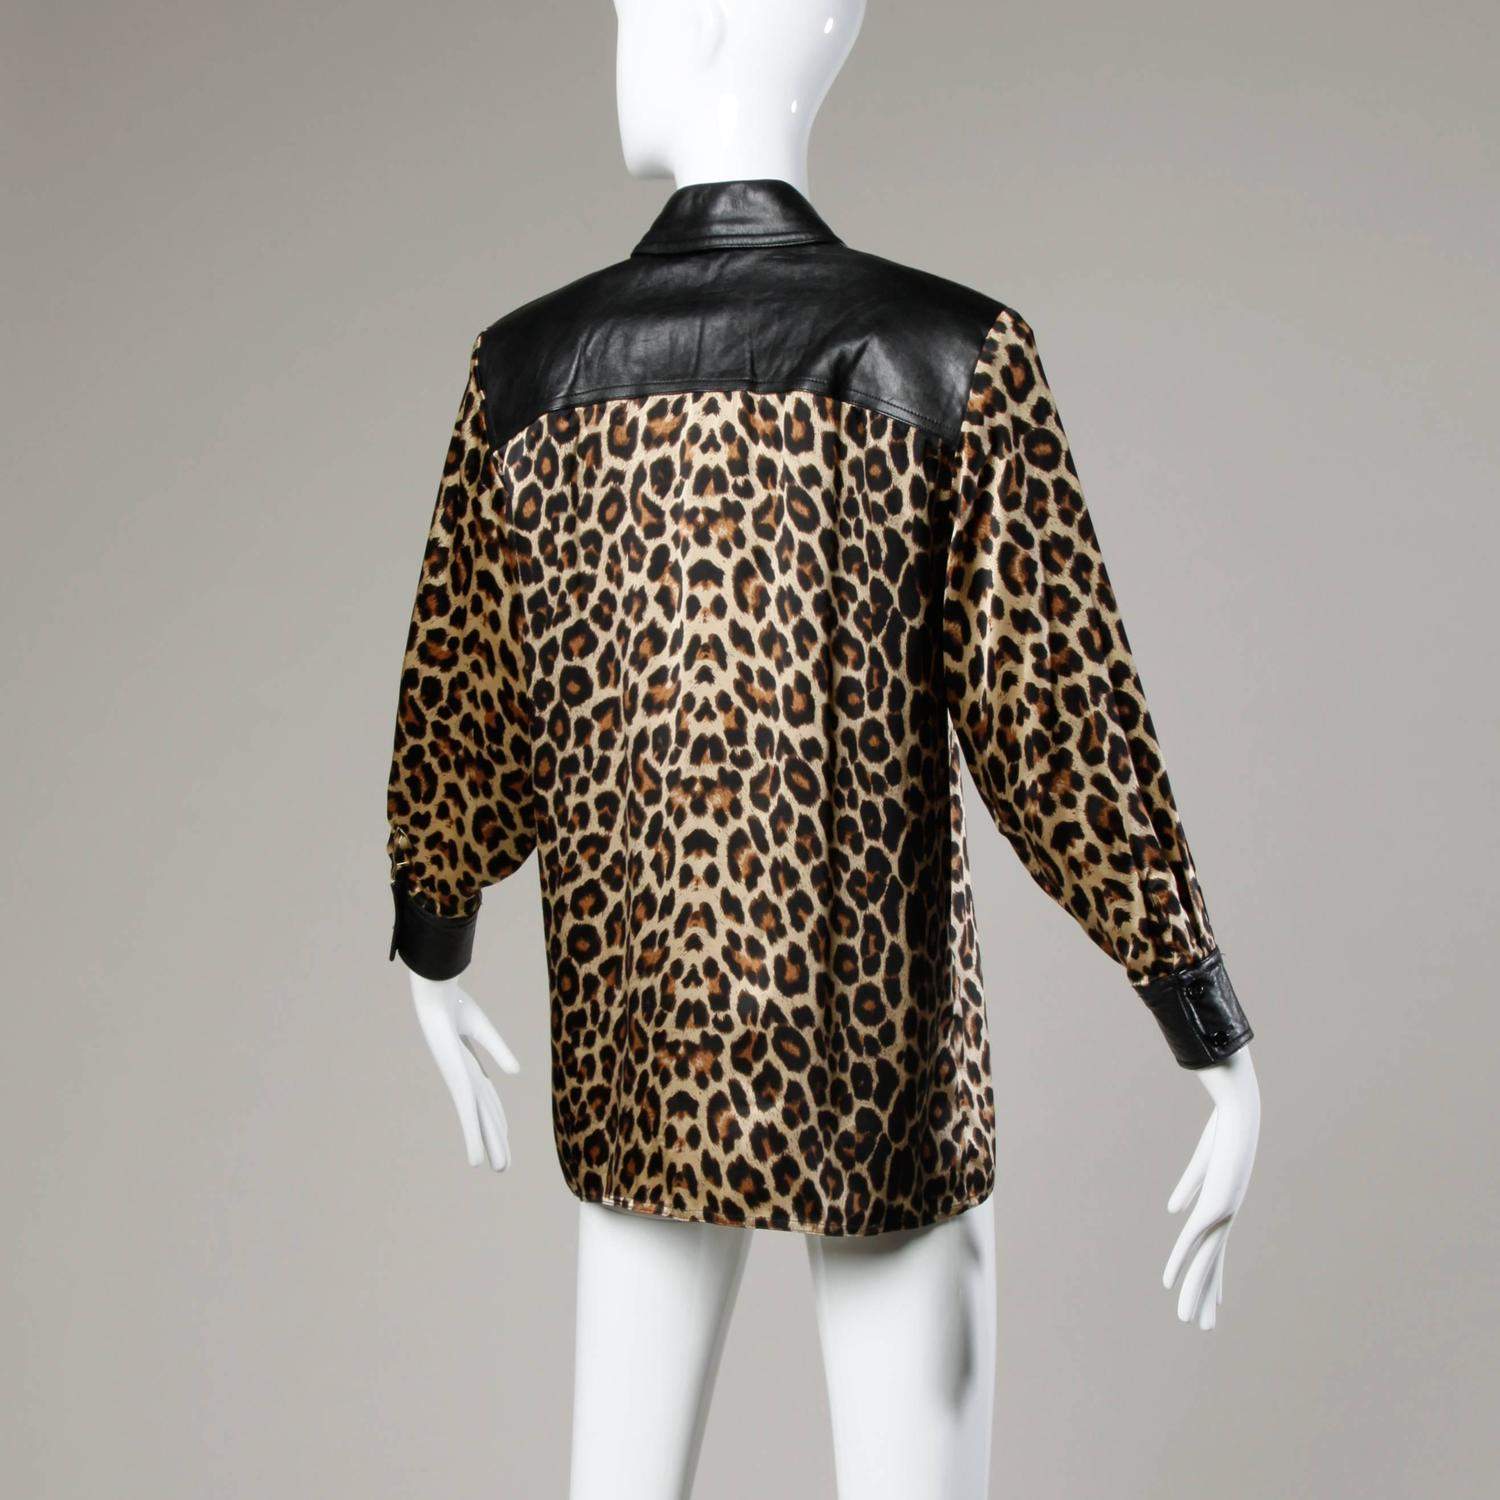 Leopard Blouse With Black Trim 82